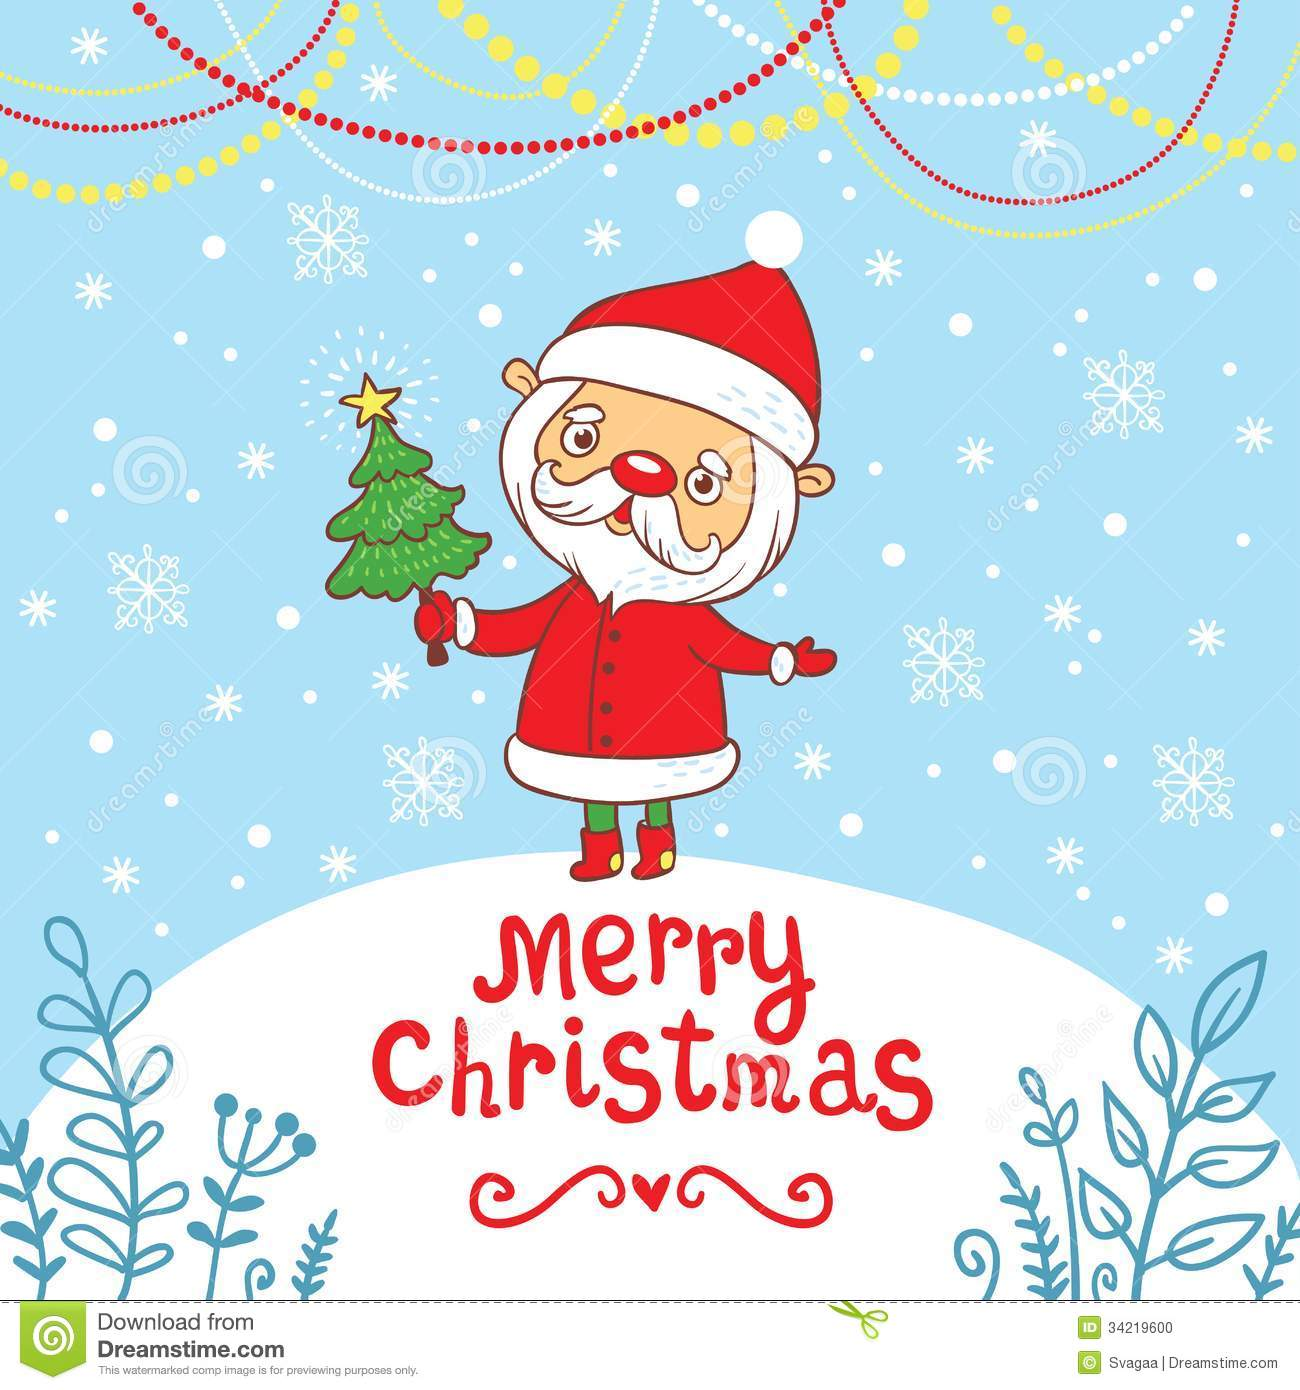 merry christmas greeting card with cute santa image 34219600